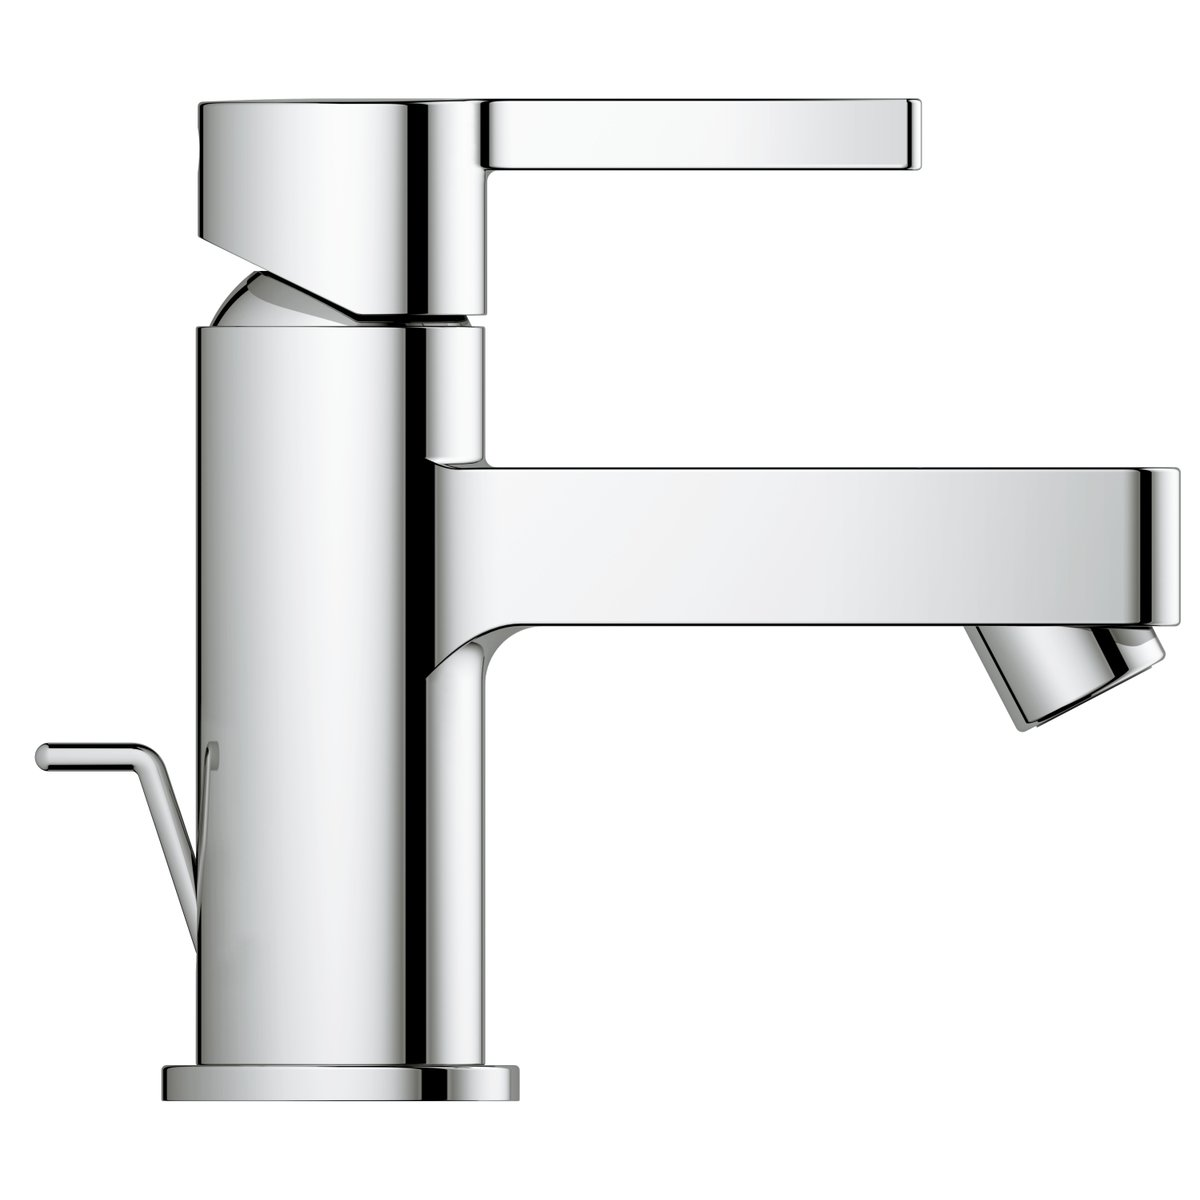 grohe lineare m langeur de lavabo 28mm avec tirette chrome. Black Bedroom Furniture Sets. Home Design Ideas